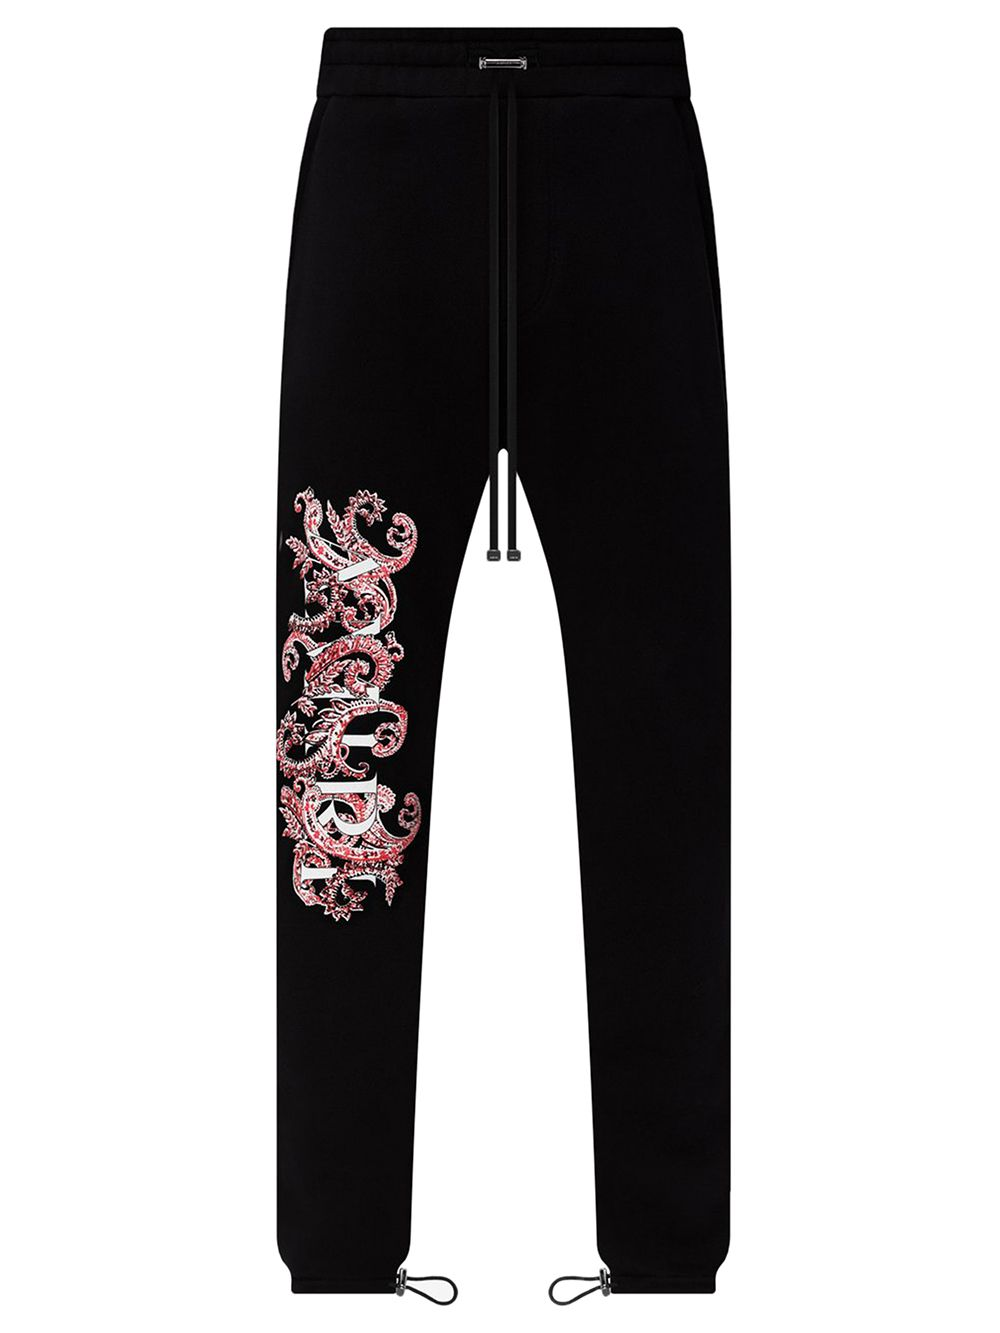 Paisley Allover Sweatpants Black And Red